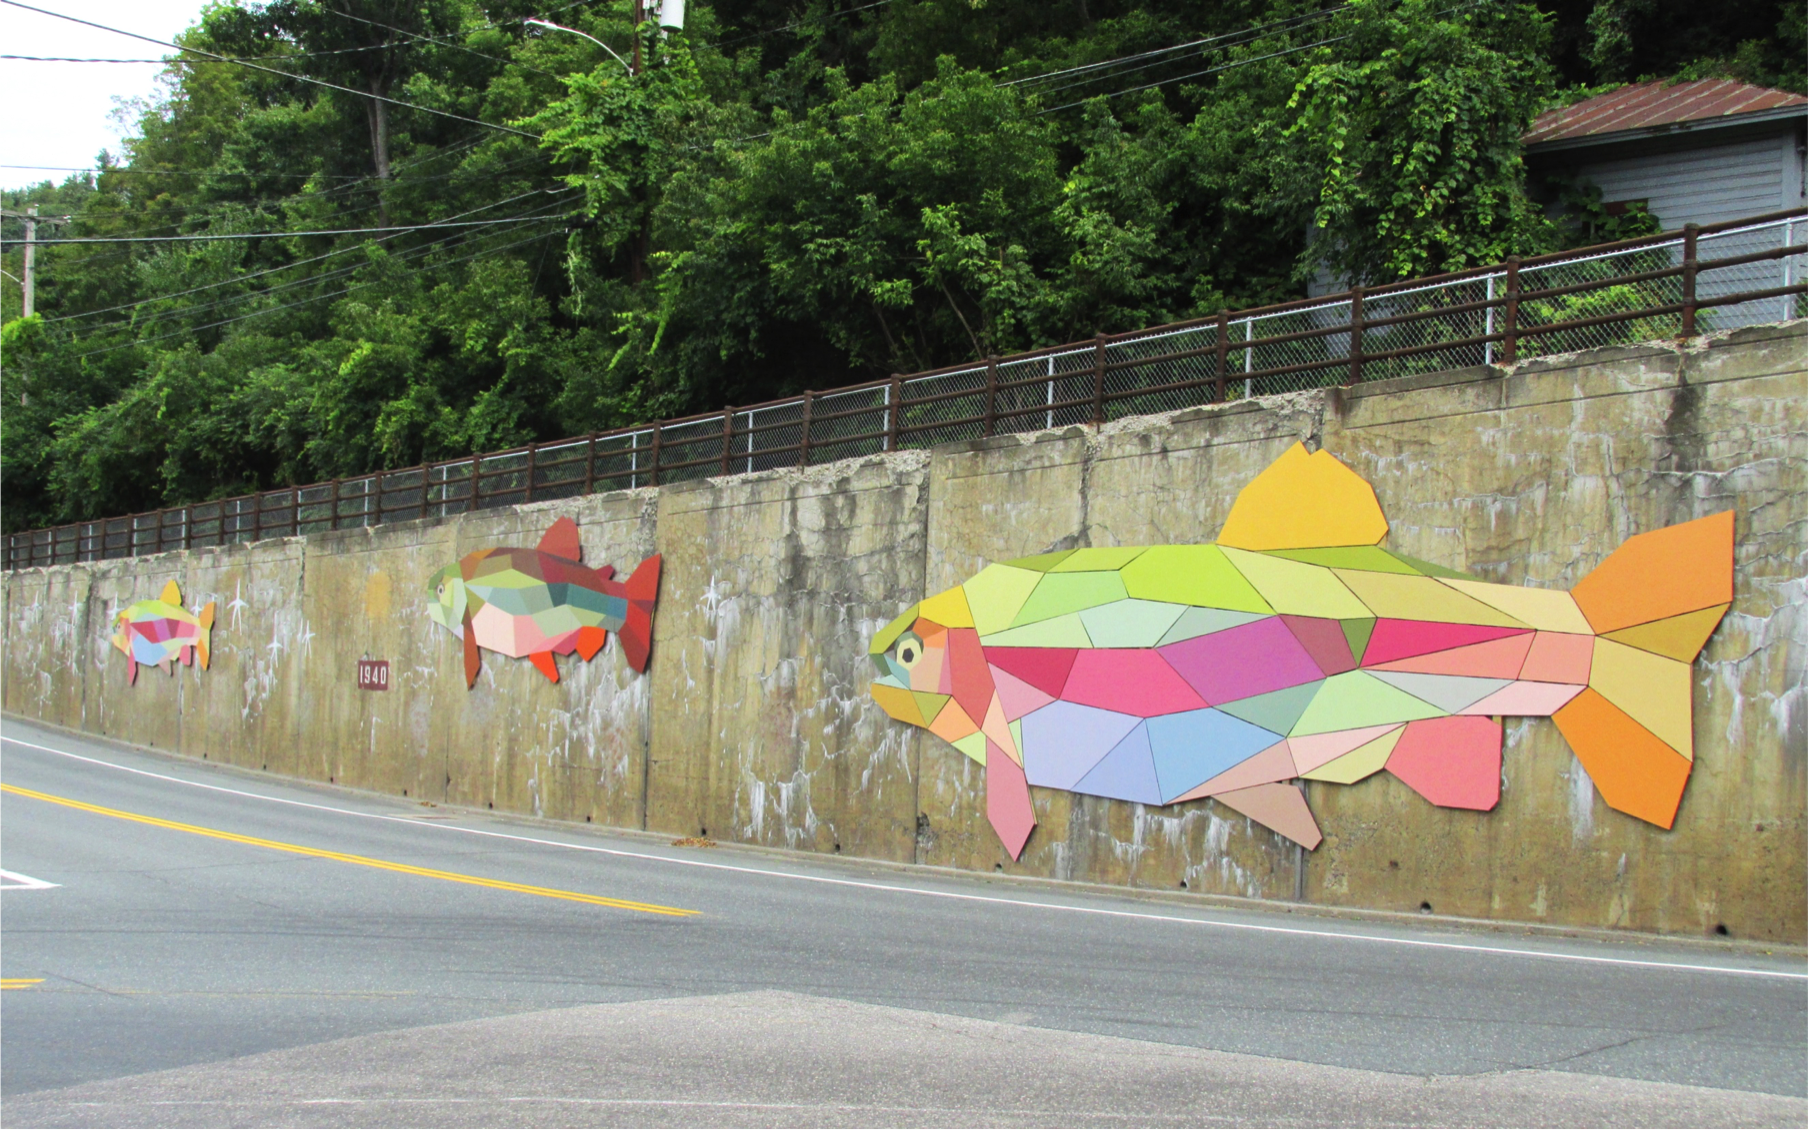 We're proud to launch three public art projects with a grant from the Vermont Art Council. Learn more about our new 200-foot mural, colorful banners and benches.